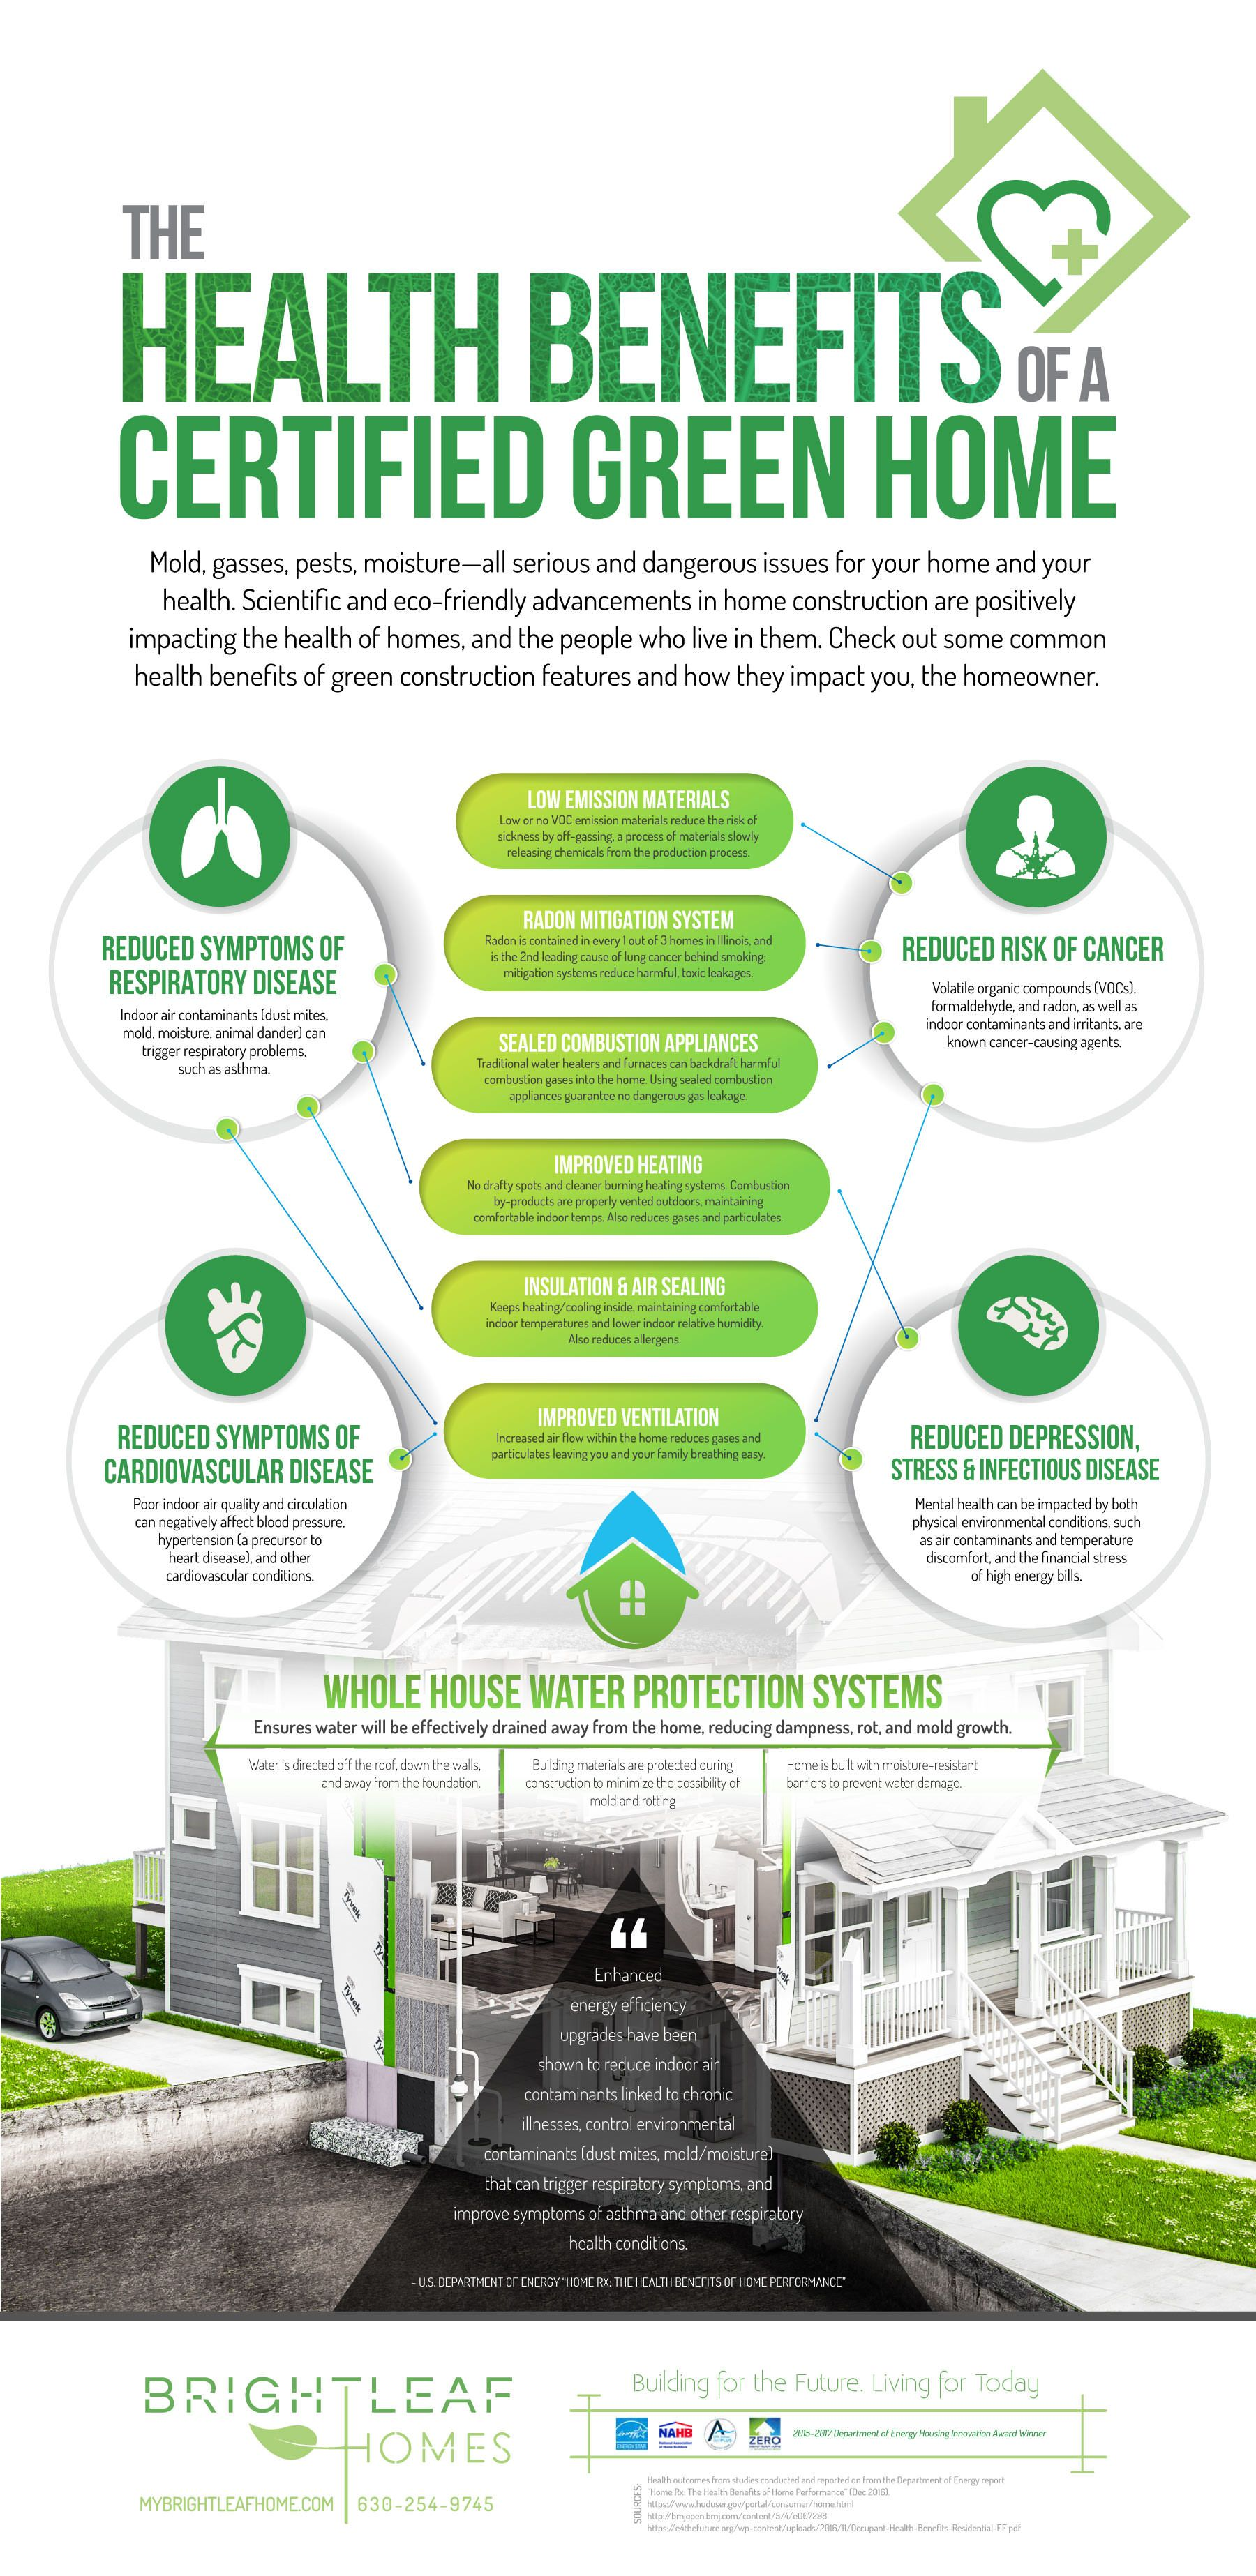 Health Benefits Of A Certified Green Home Infographic The Home Is Where The Heart Is So It S Best T Energy Efficient Homes Green Construction Health Benefits